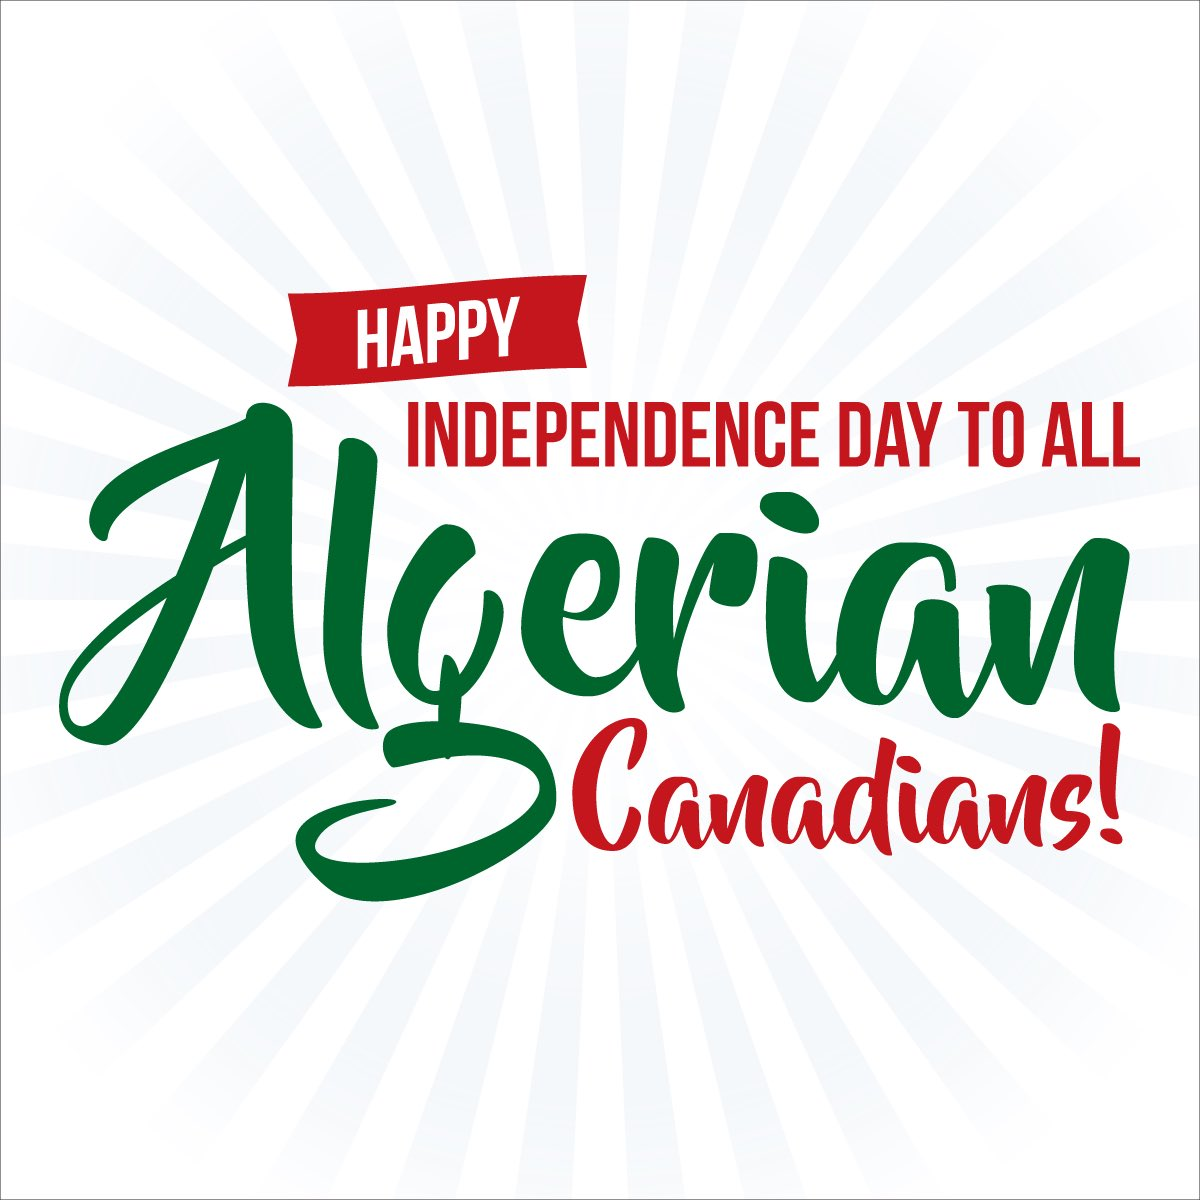 I wish all Algerian-Canadians celebrating a Happy Independence Day! #5juillet1962 <br>http://pic.twitter.com/t6JFeblfBo